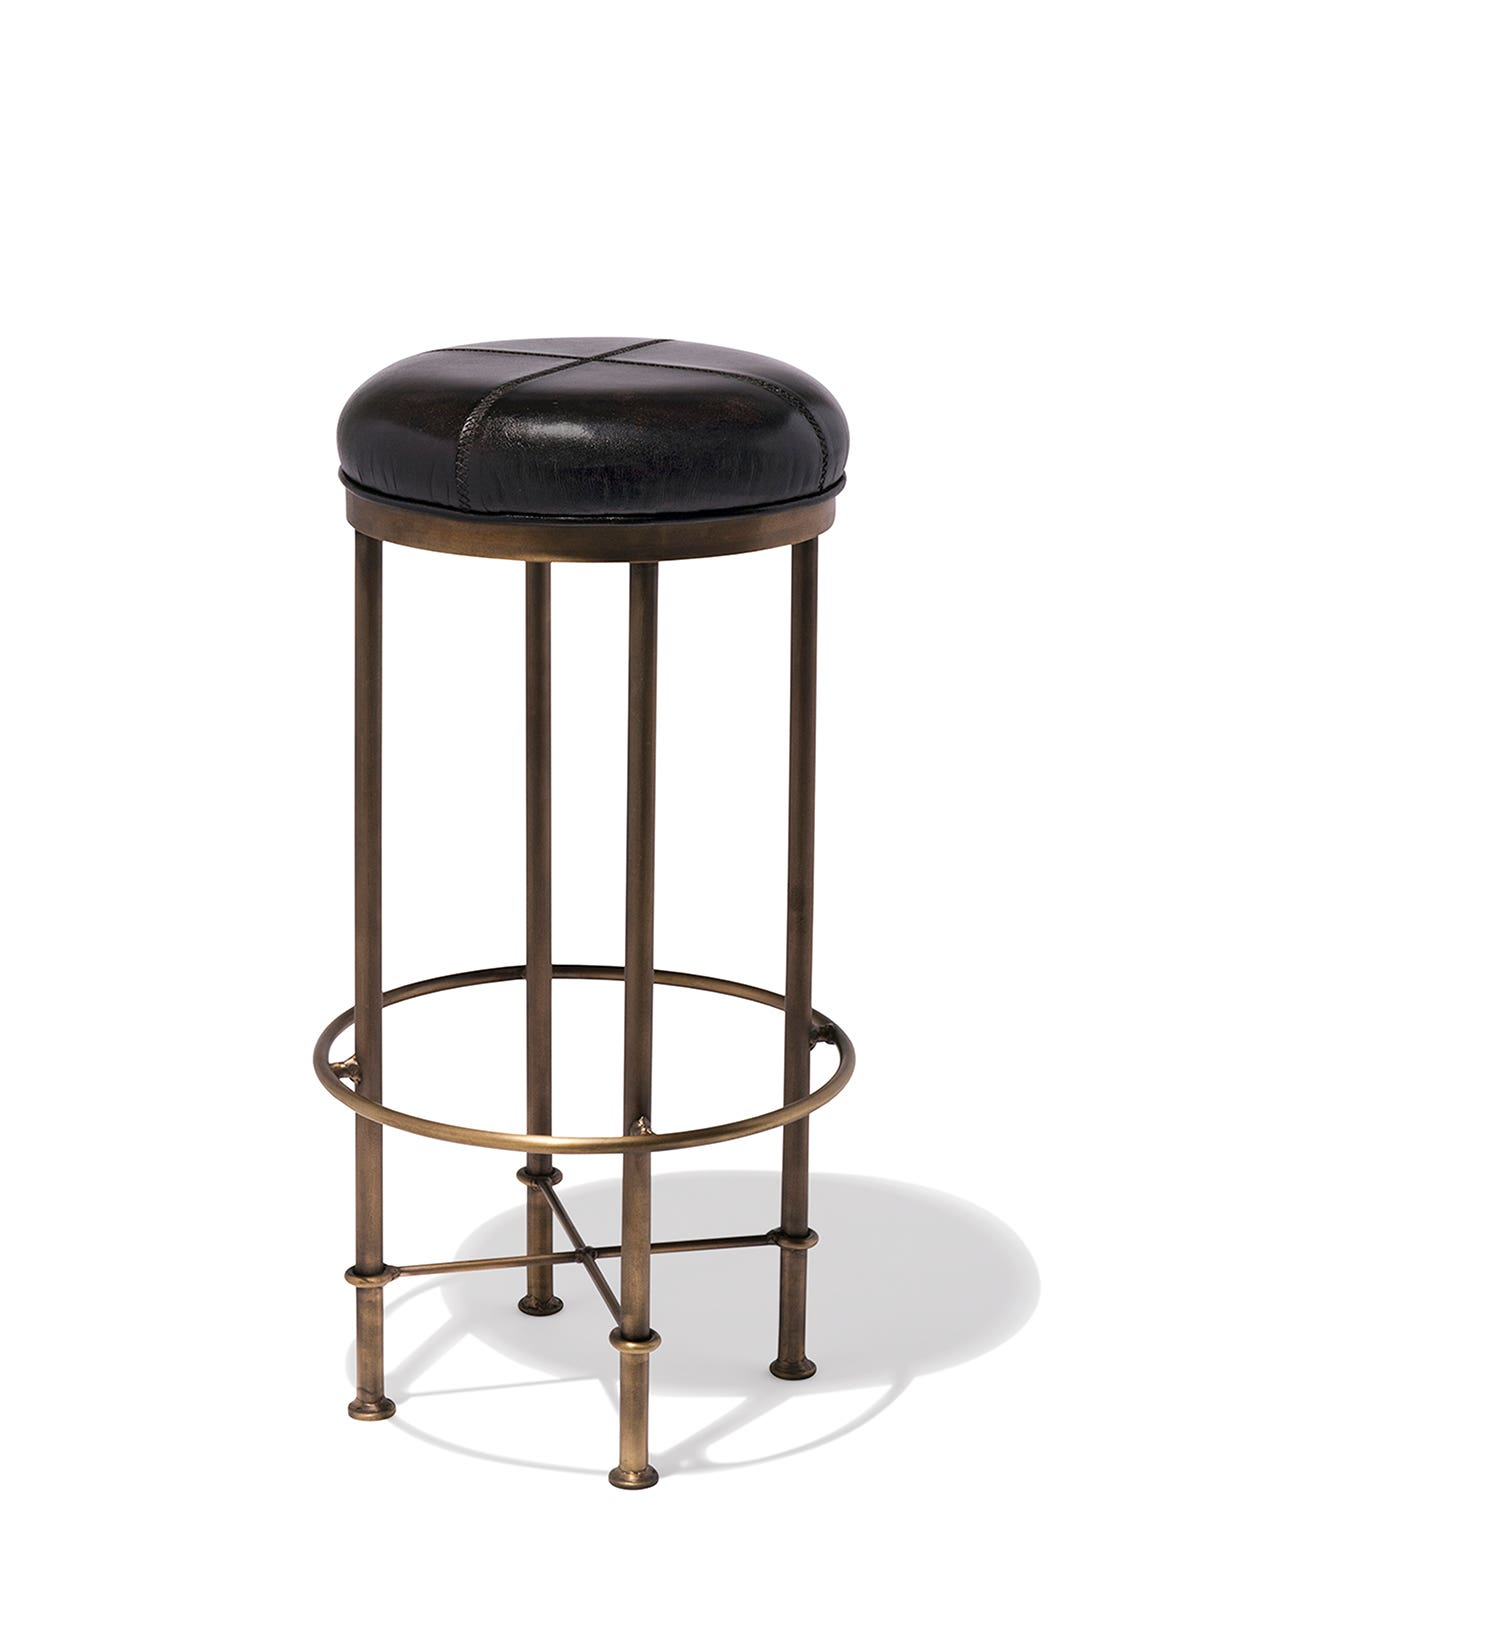 The Singapore Club Counter Stool a part of our new upholstered stool collection from Pure  sc 1 st  Industry West & Industrial Mid-Century and Modern Bar and Counter Stools for Home ... islam-shia.org